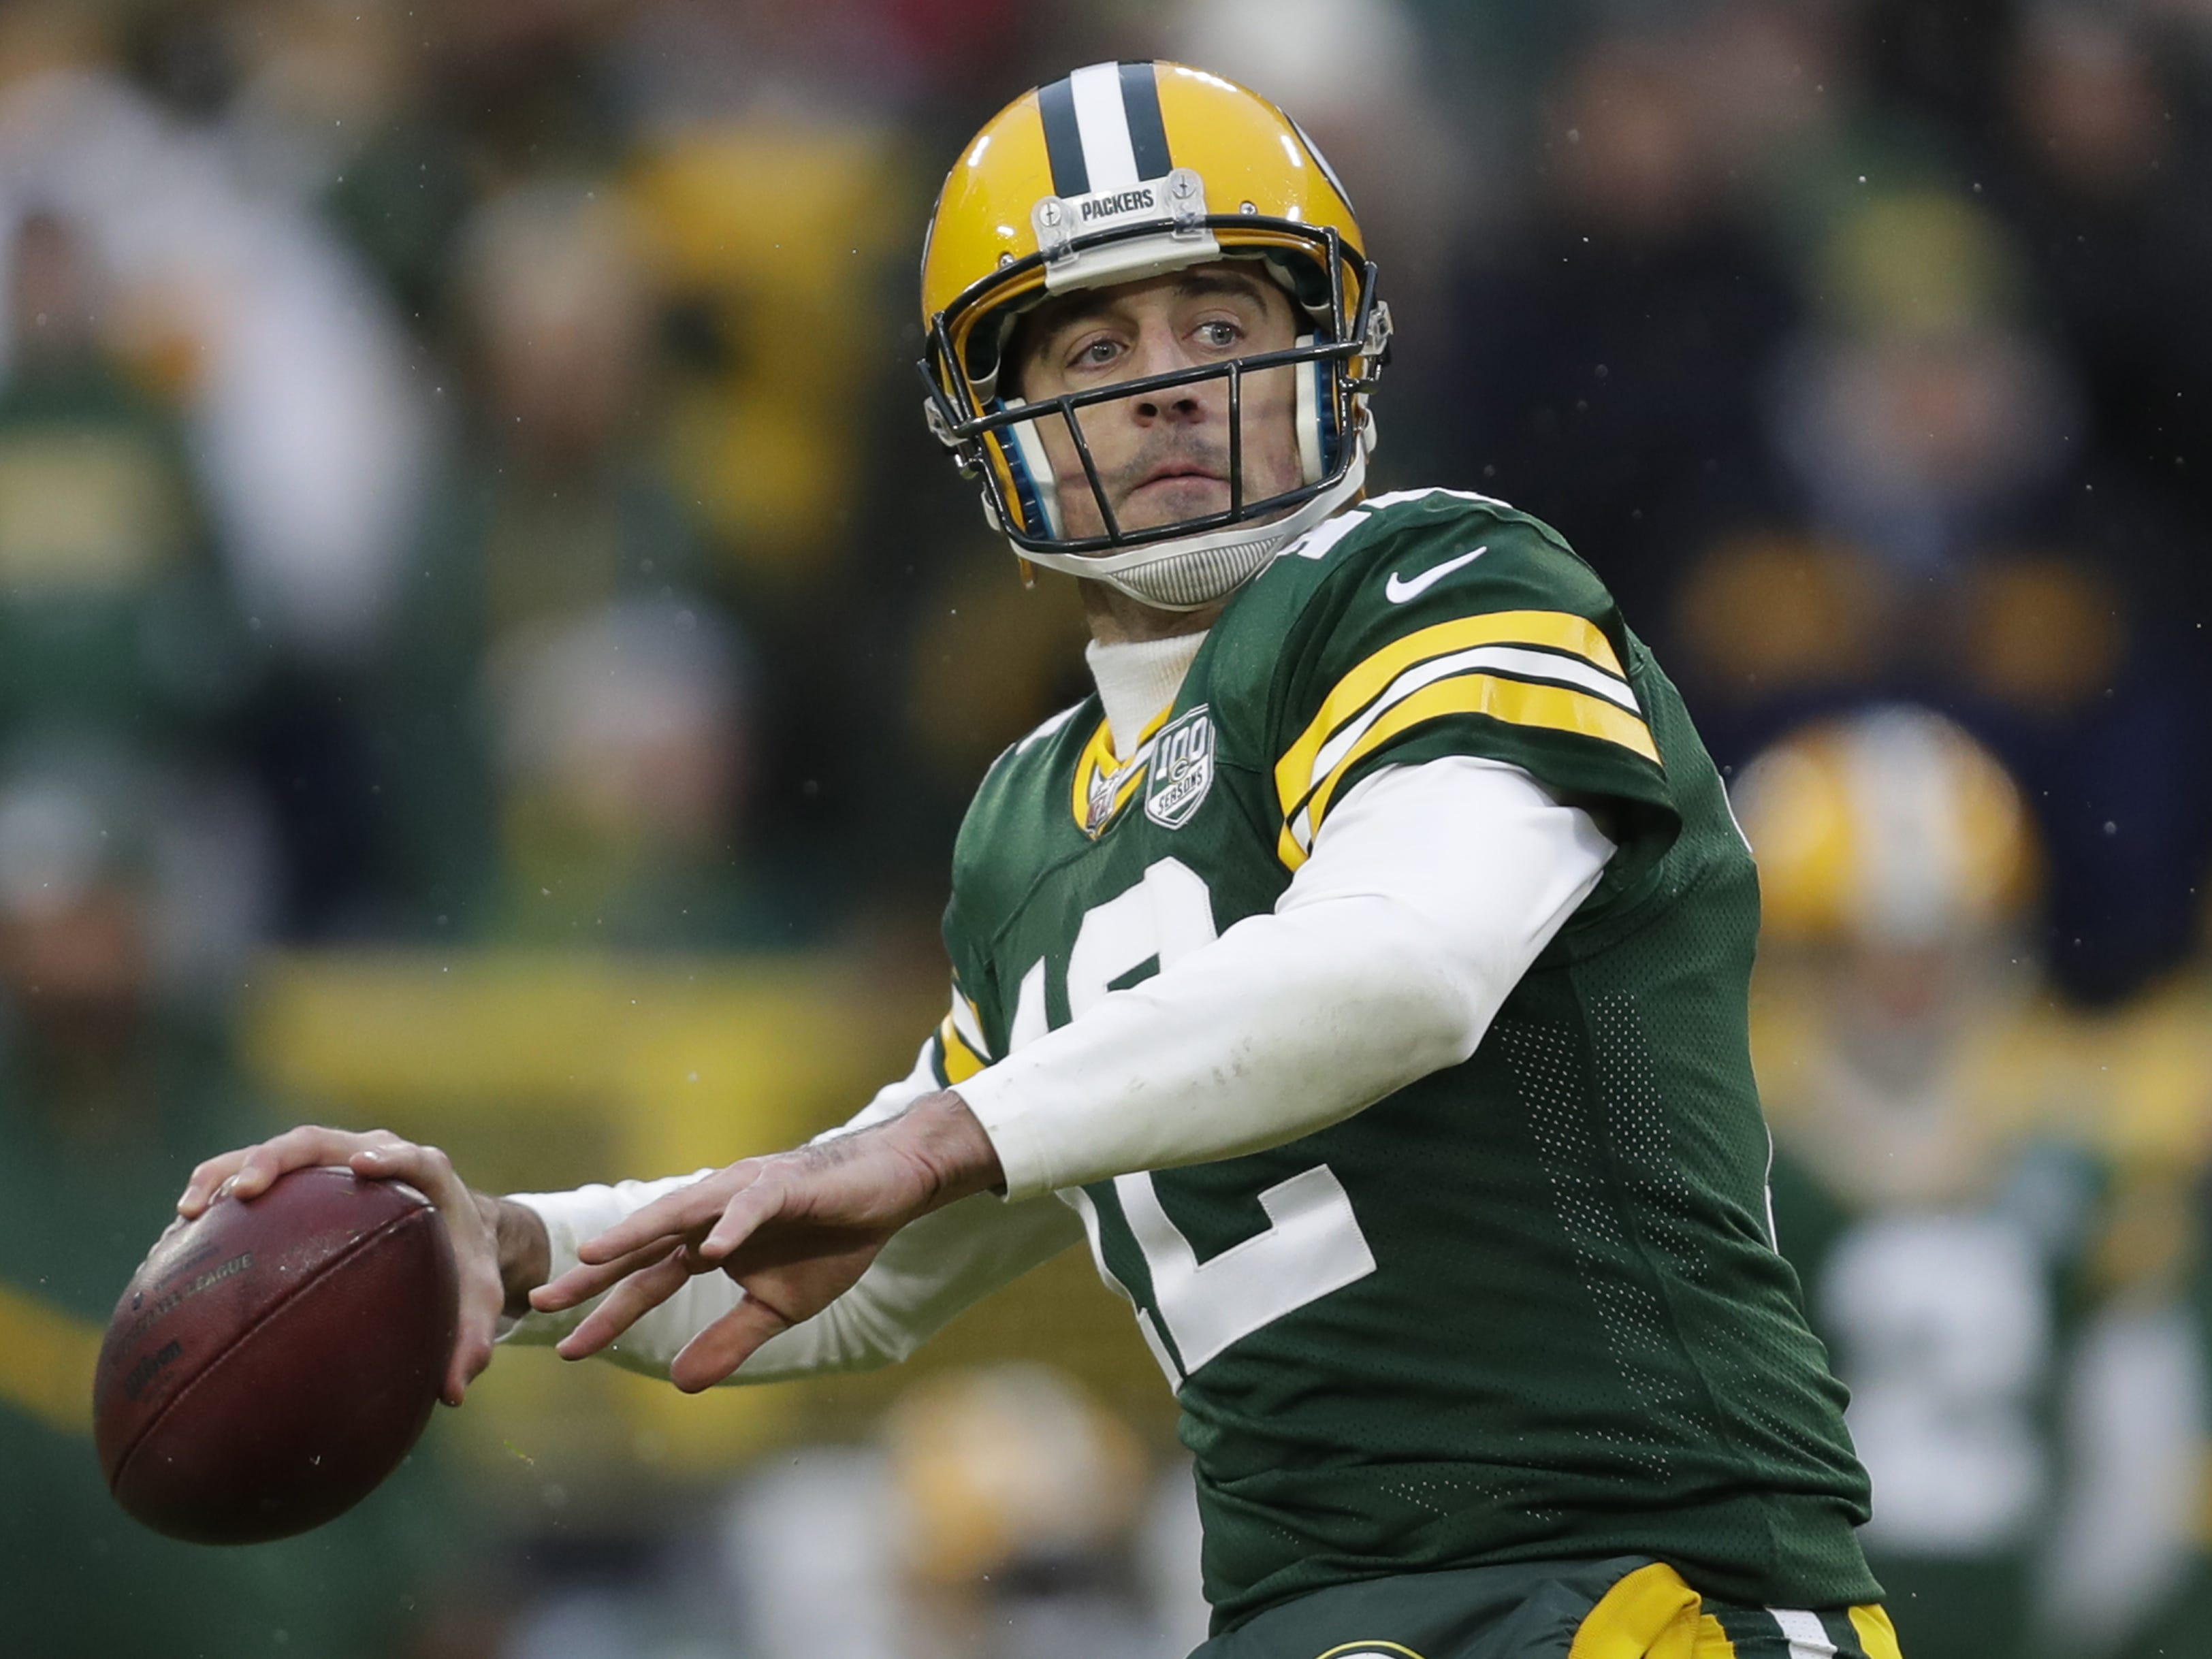 Green Bay Packers quarterback Aaron Rodgers (12) throws an incomplete long pass attempt late in the fourth quarter against the Arizona Cardinals Sunday, December 2, 2018, at Lambeau Field in Green Bay, Wis.  Dan Powers/USA TODAY NETWORK-Wisconsin